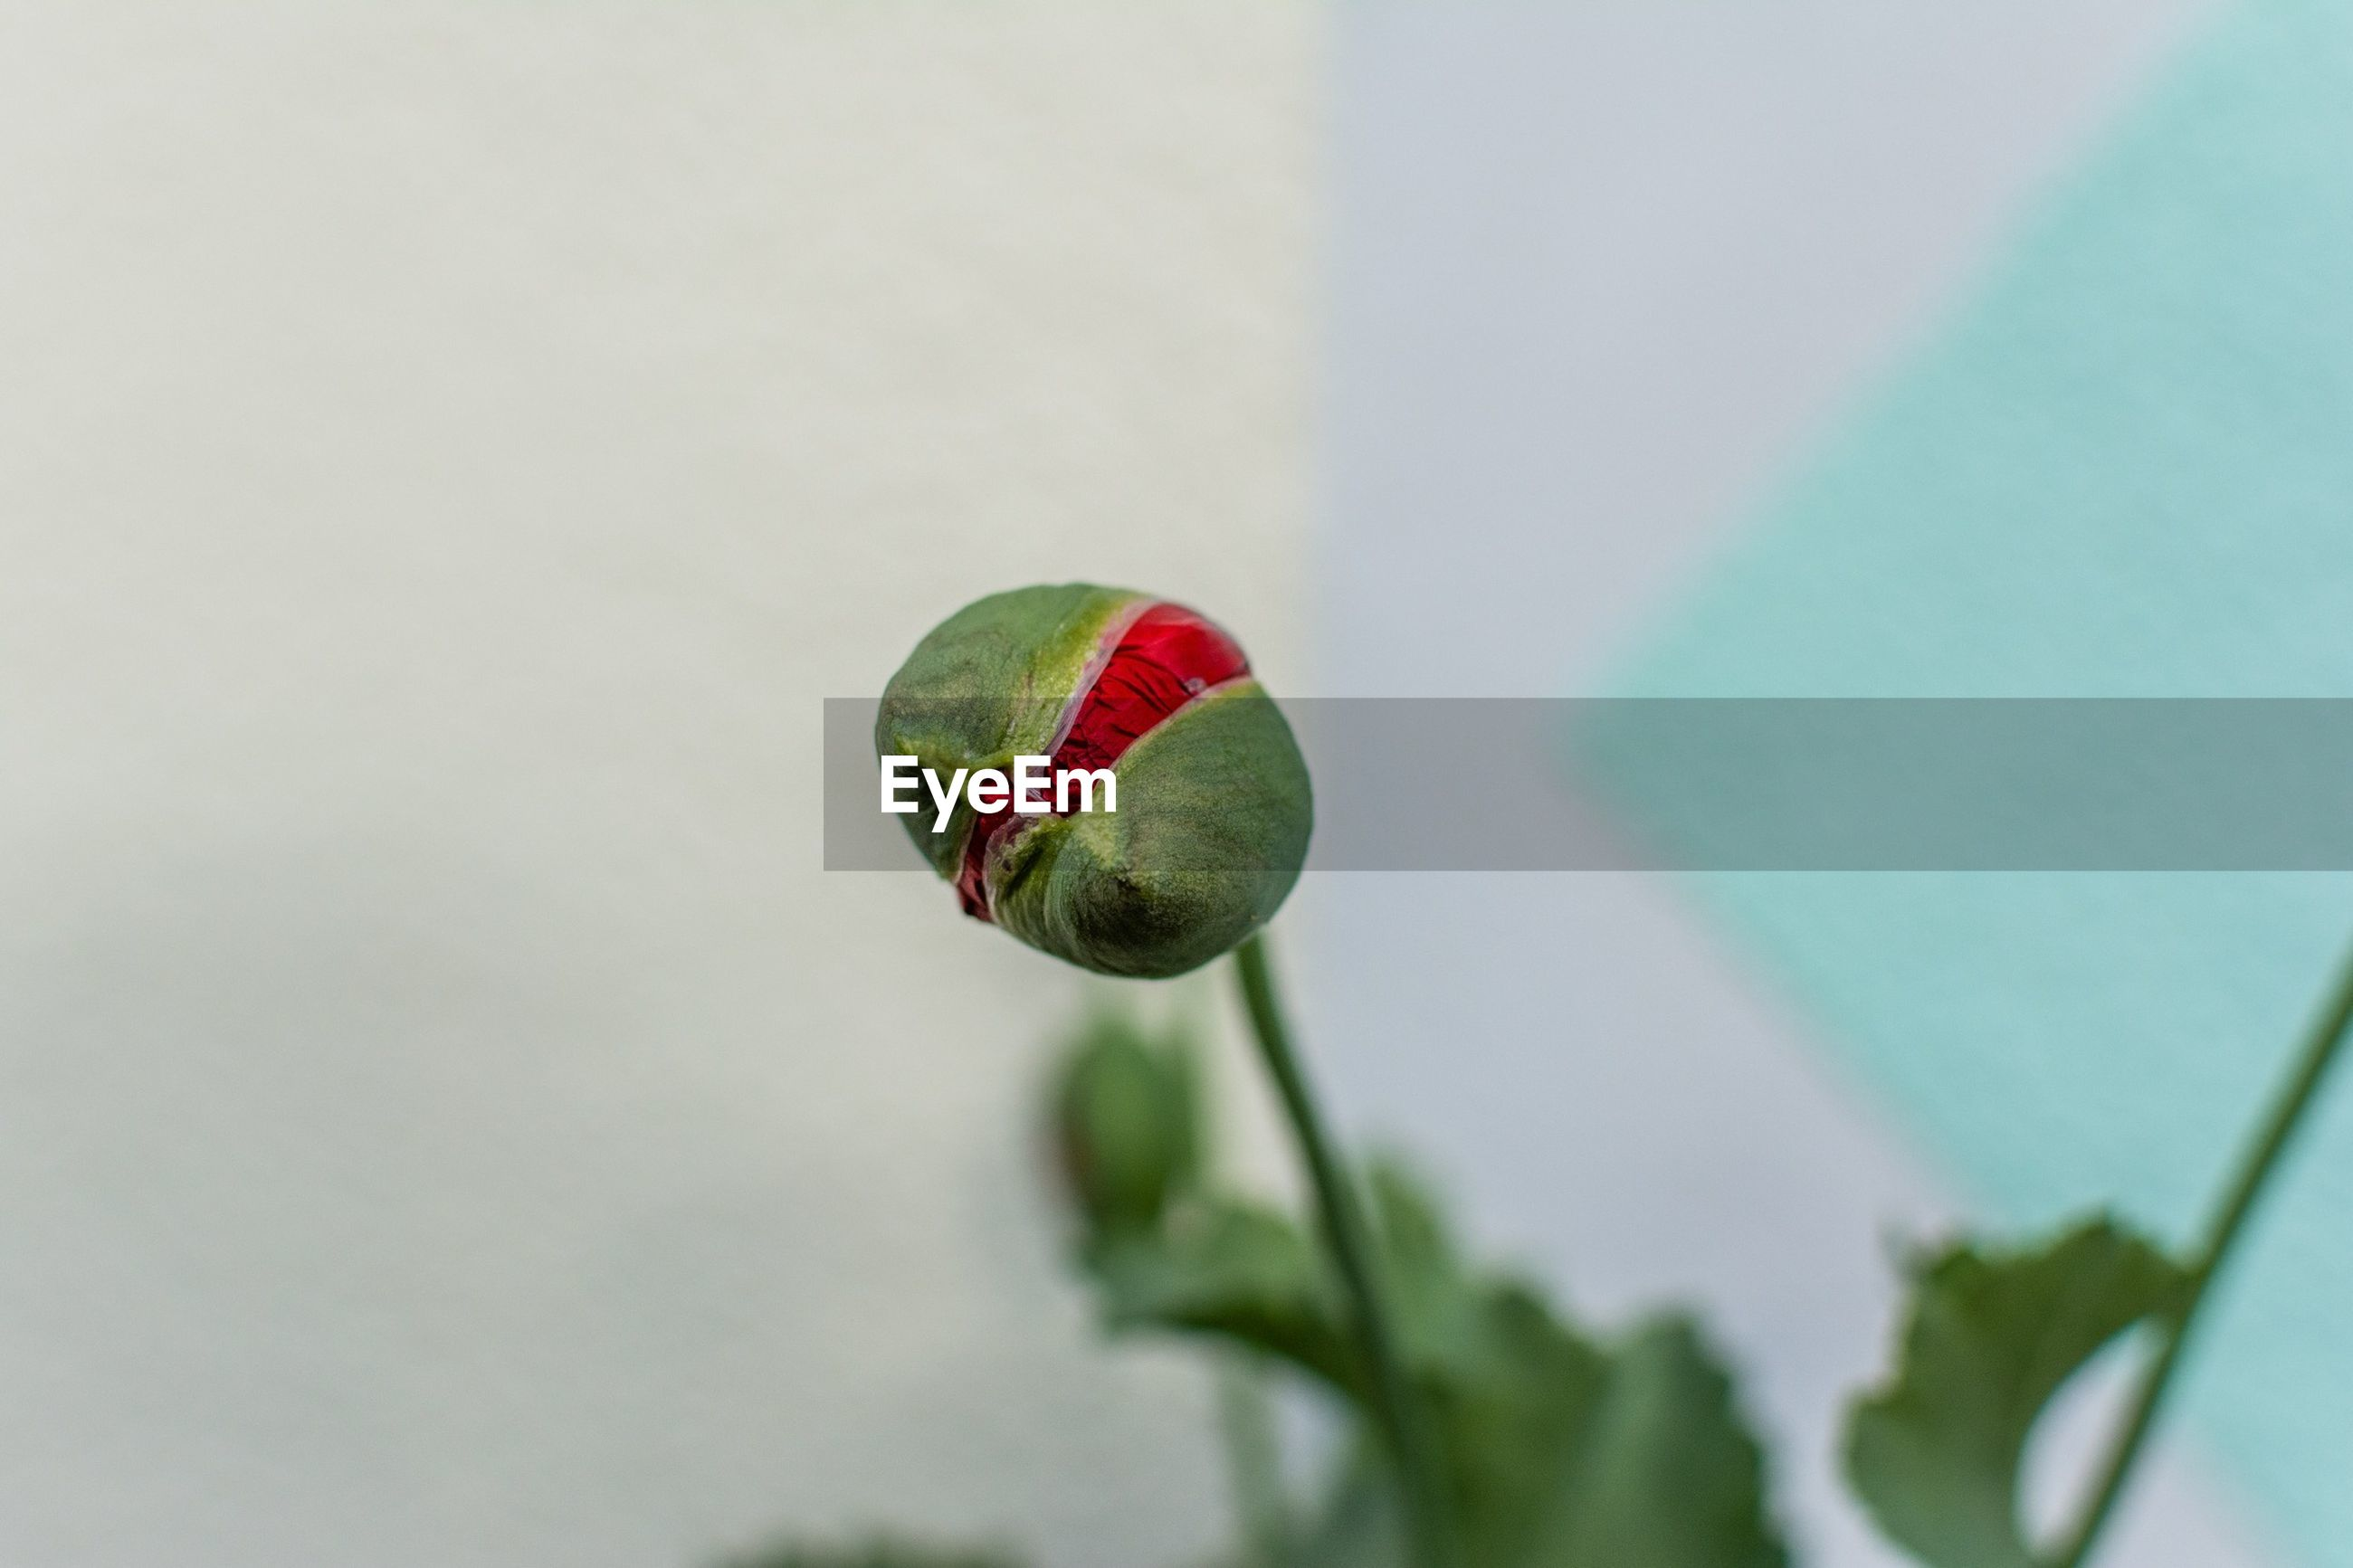 green color, red, close-up, low angle view, multi colored, hanging, focus on foreground, balloon, no people, fruit, day, green, selective focus, outdoors, nature, sky, blue, growth, single object, sphere